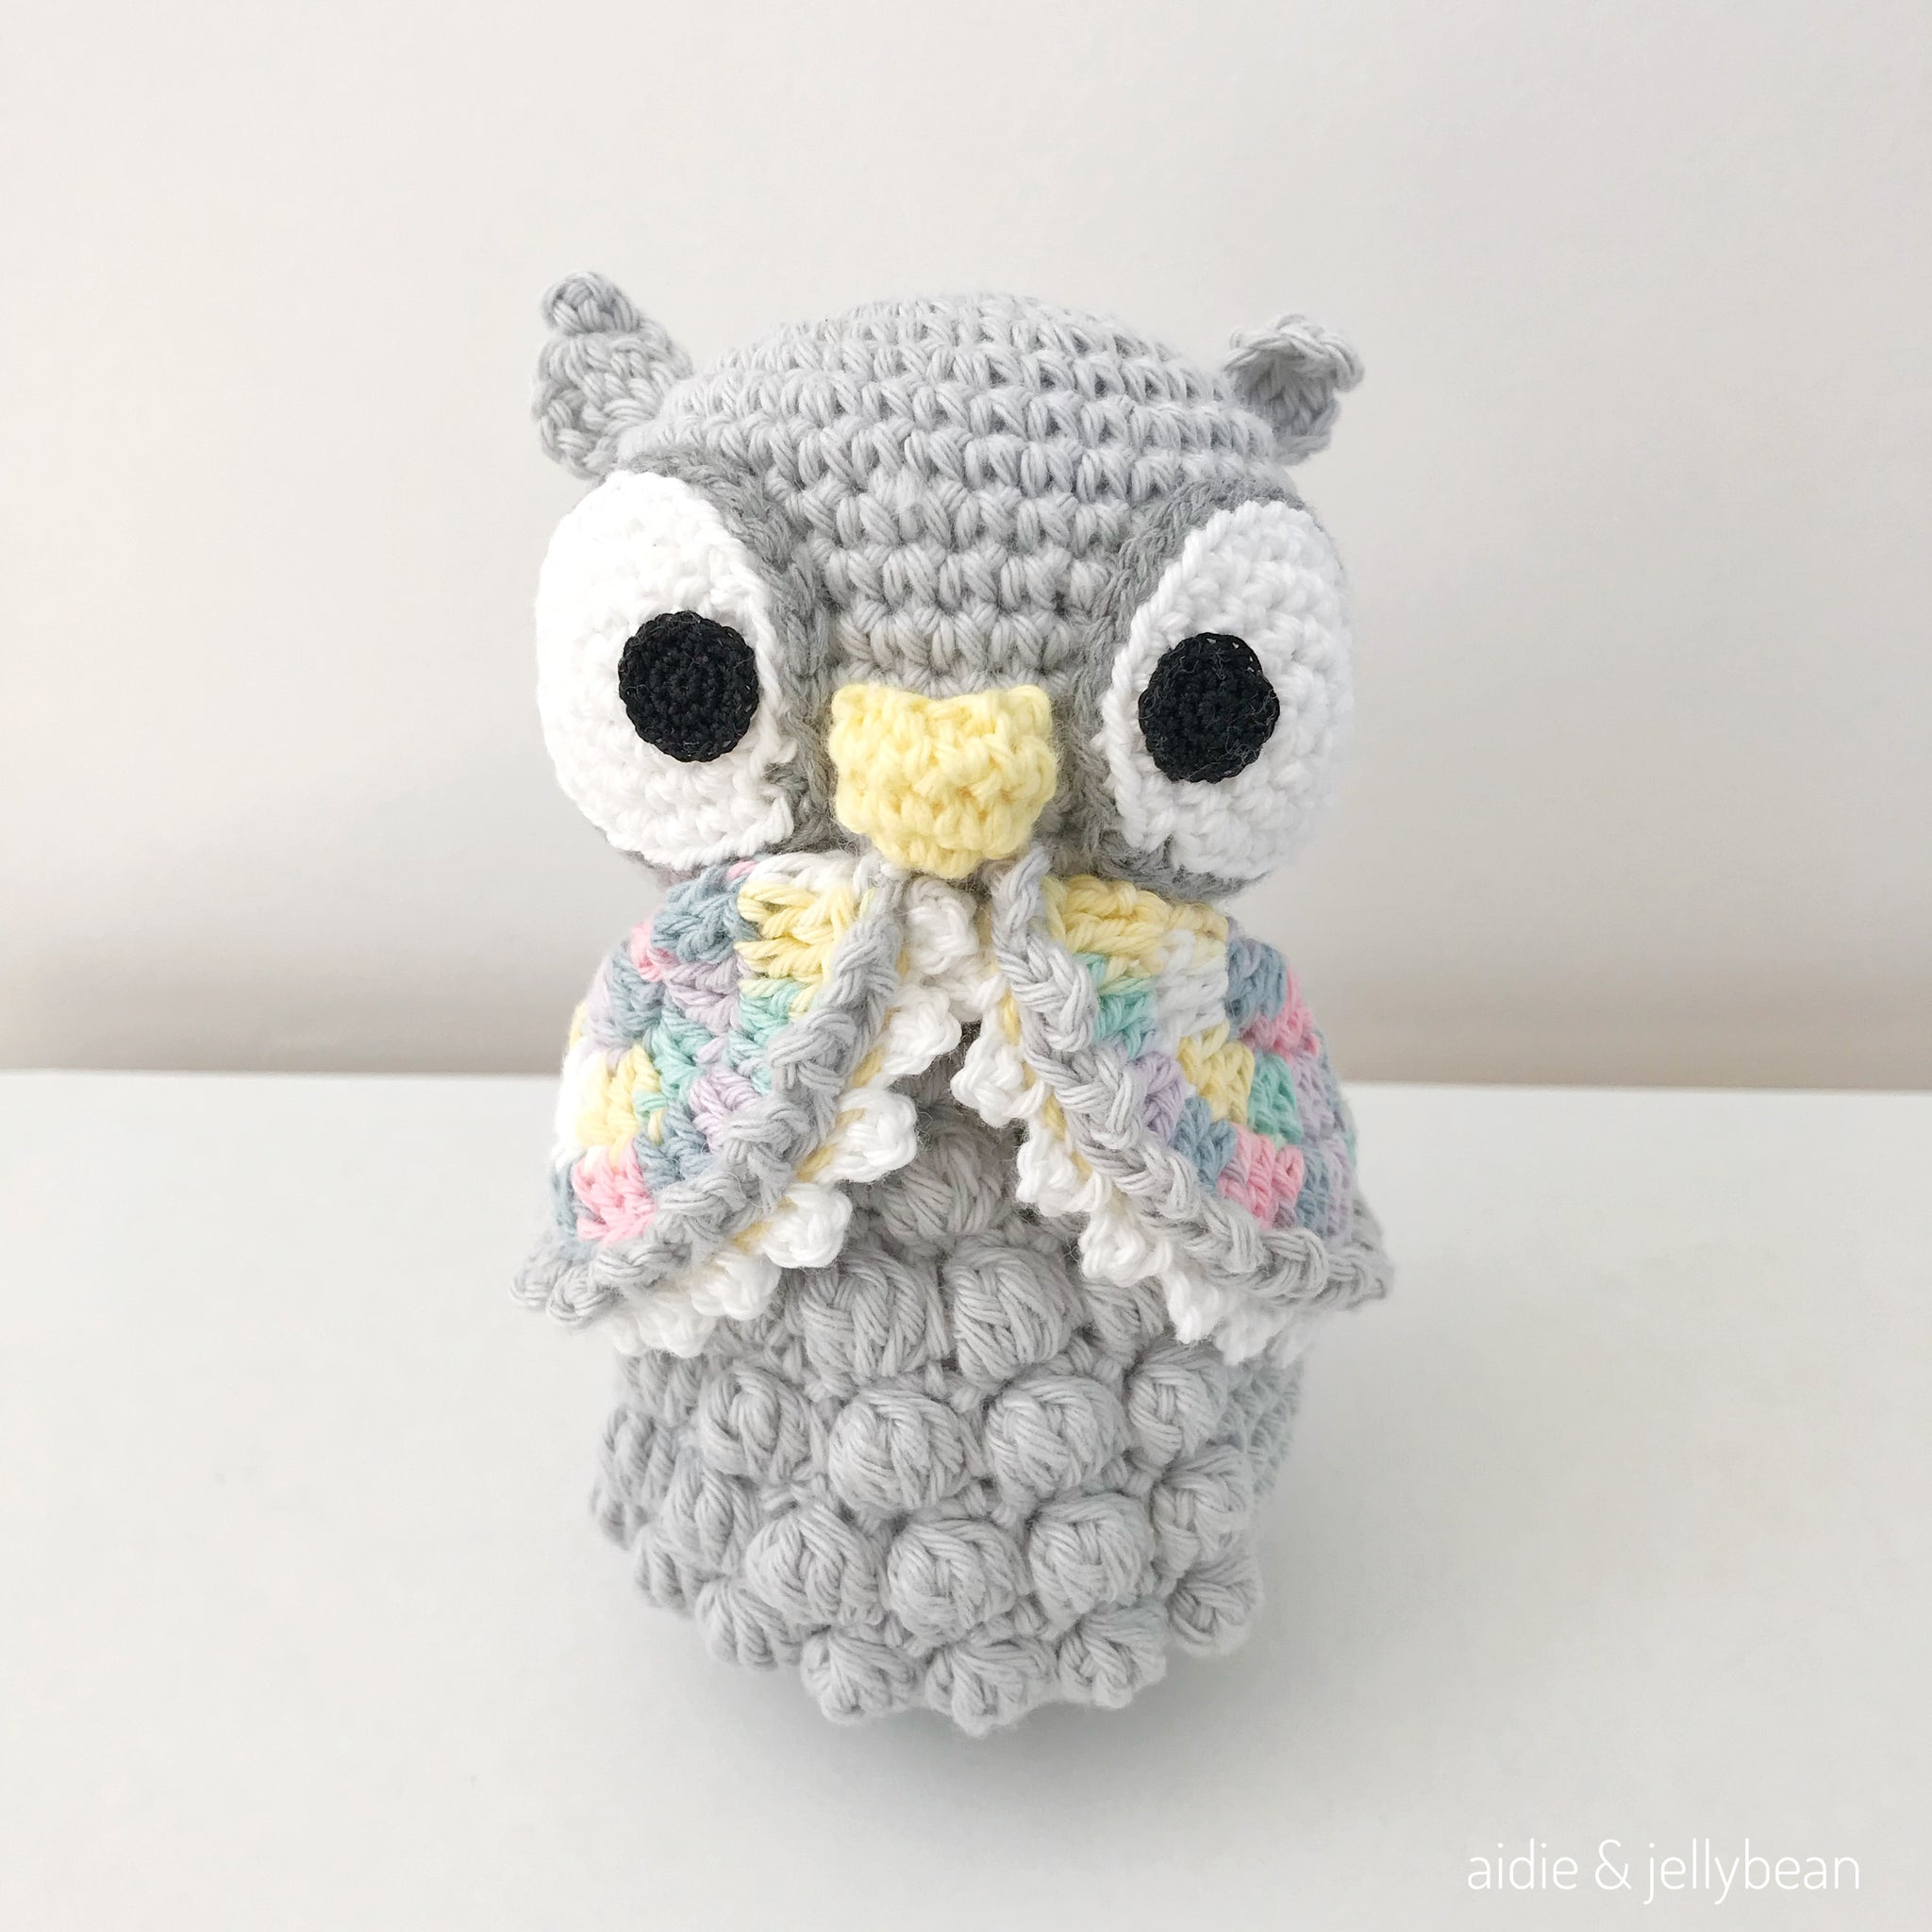 Crochet snow owl christmas ornament - mallooknits.com | 2048x2048